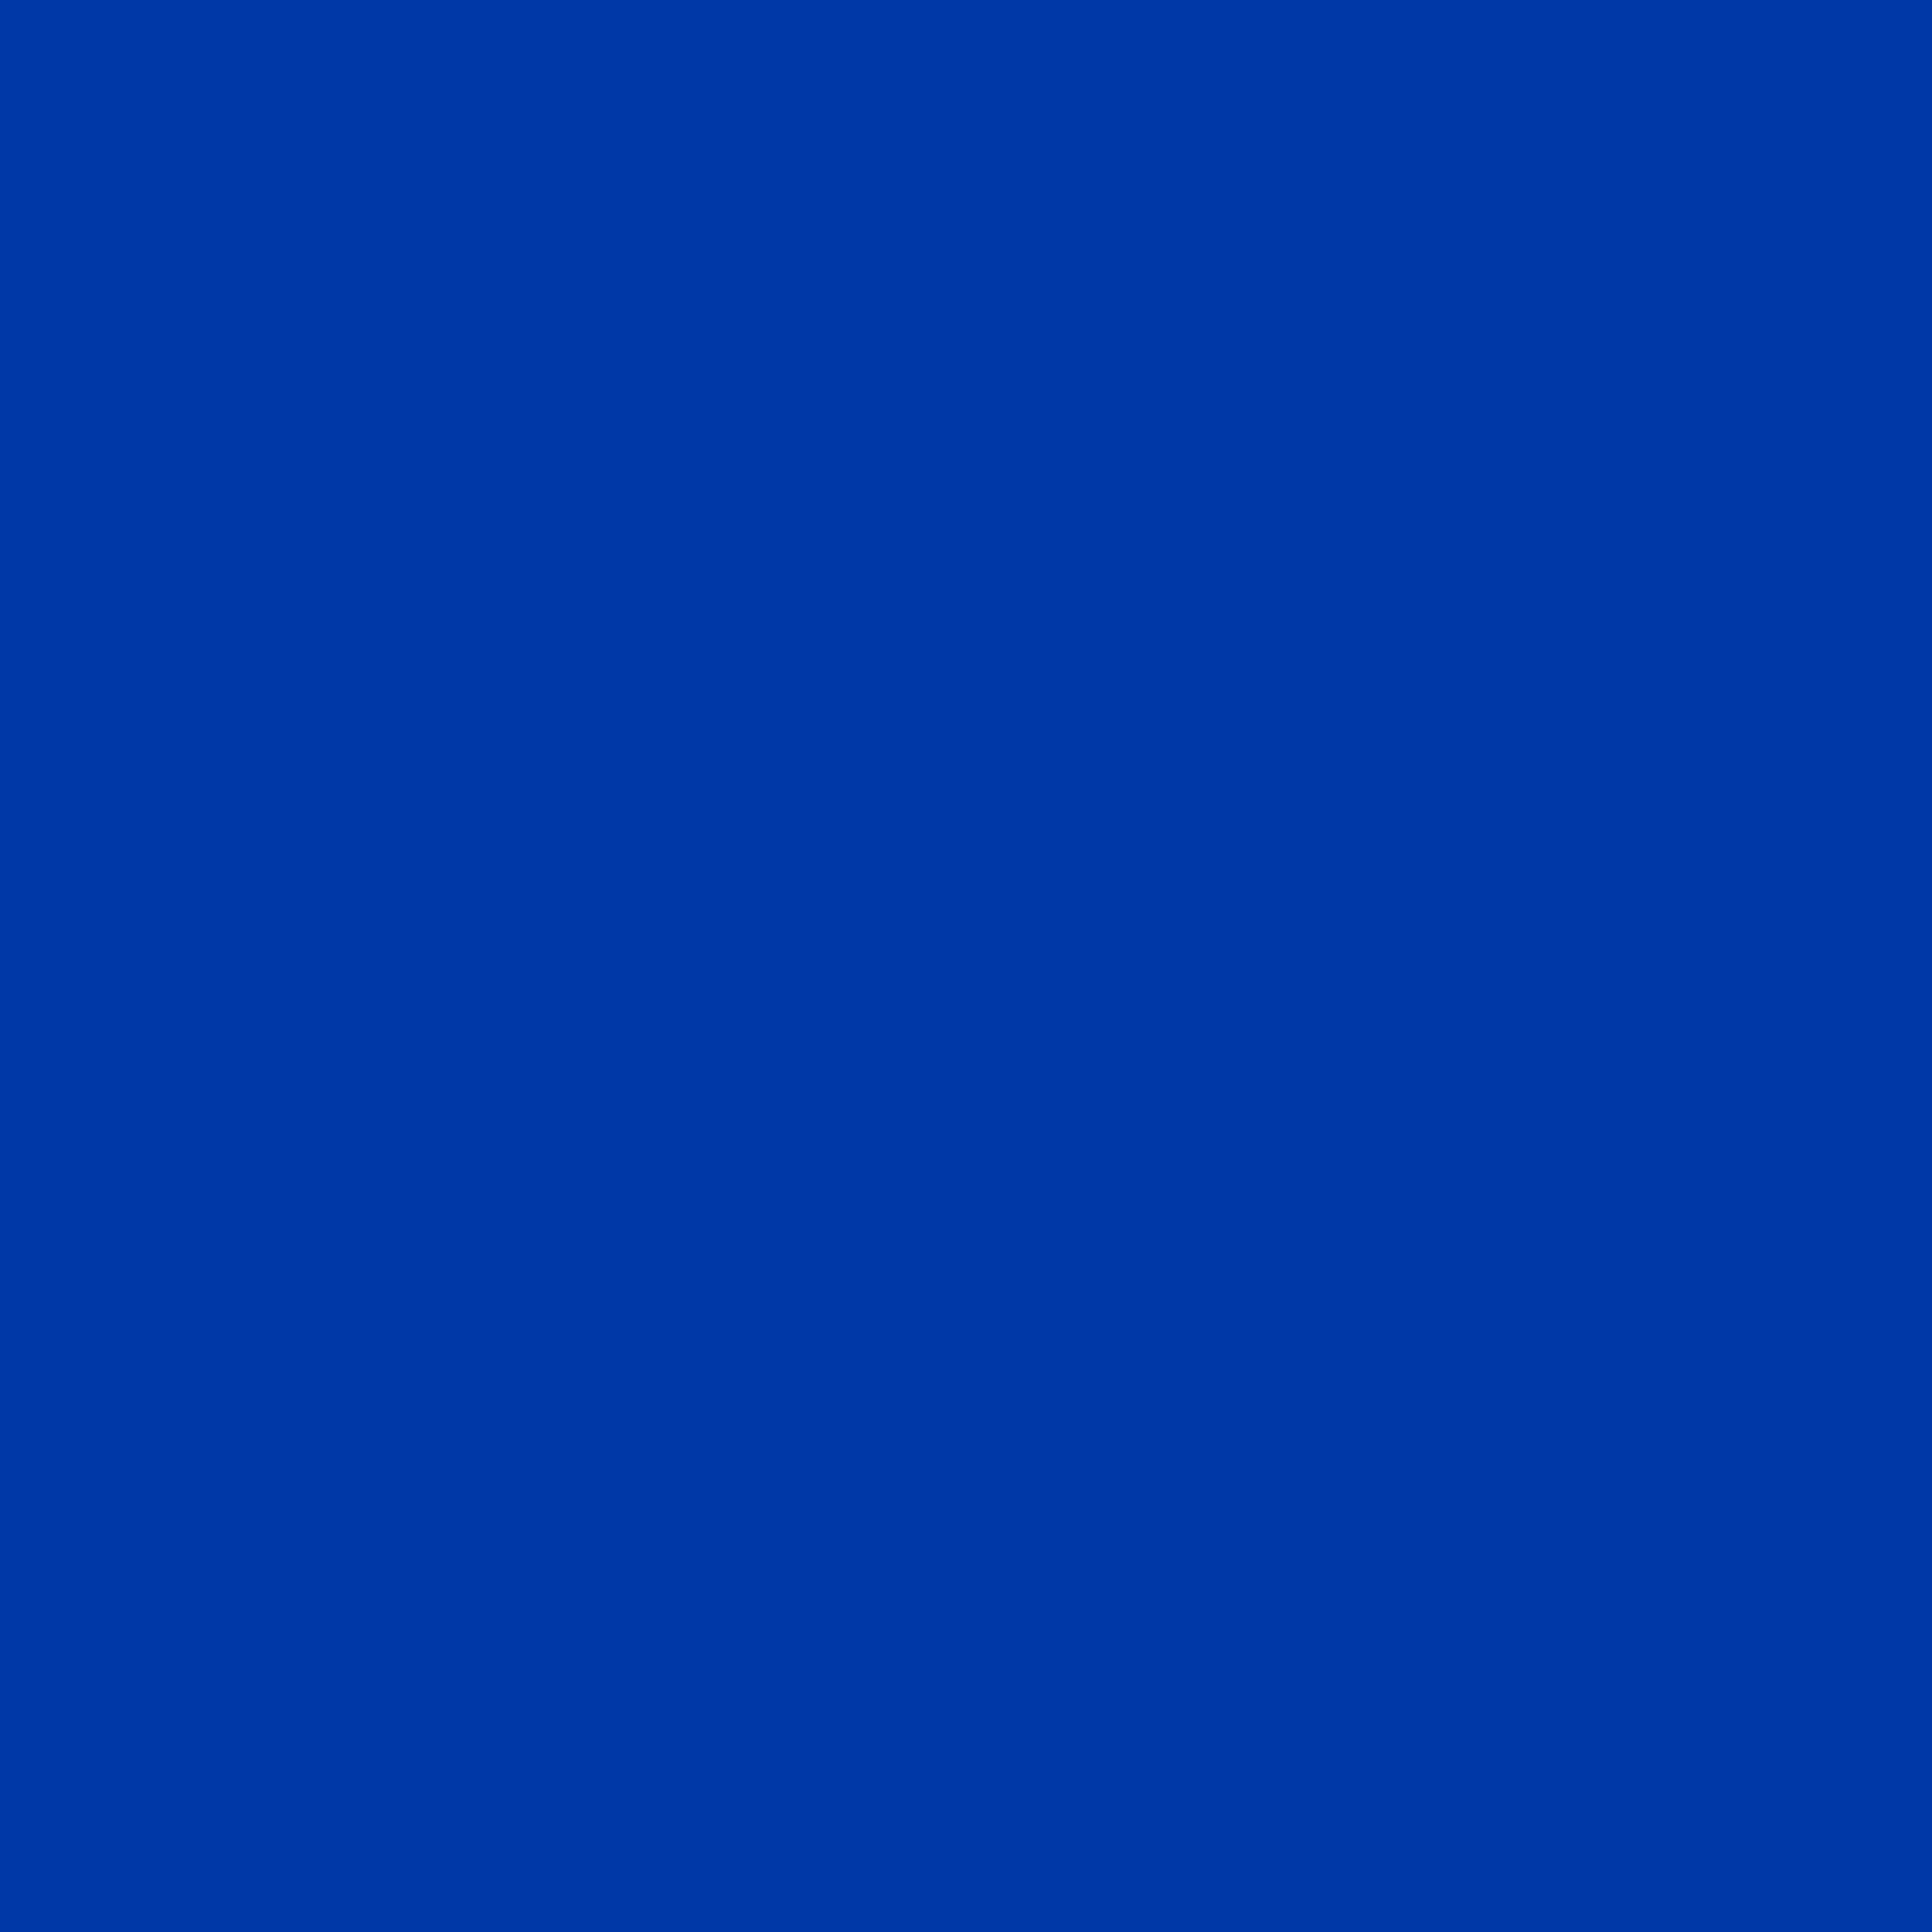 2732x2732 Royal Azure Solid Color Background